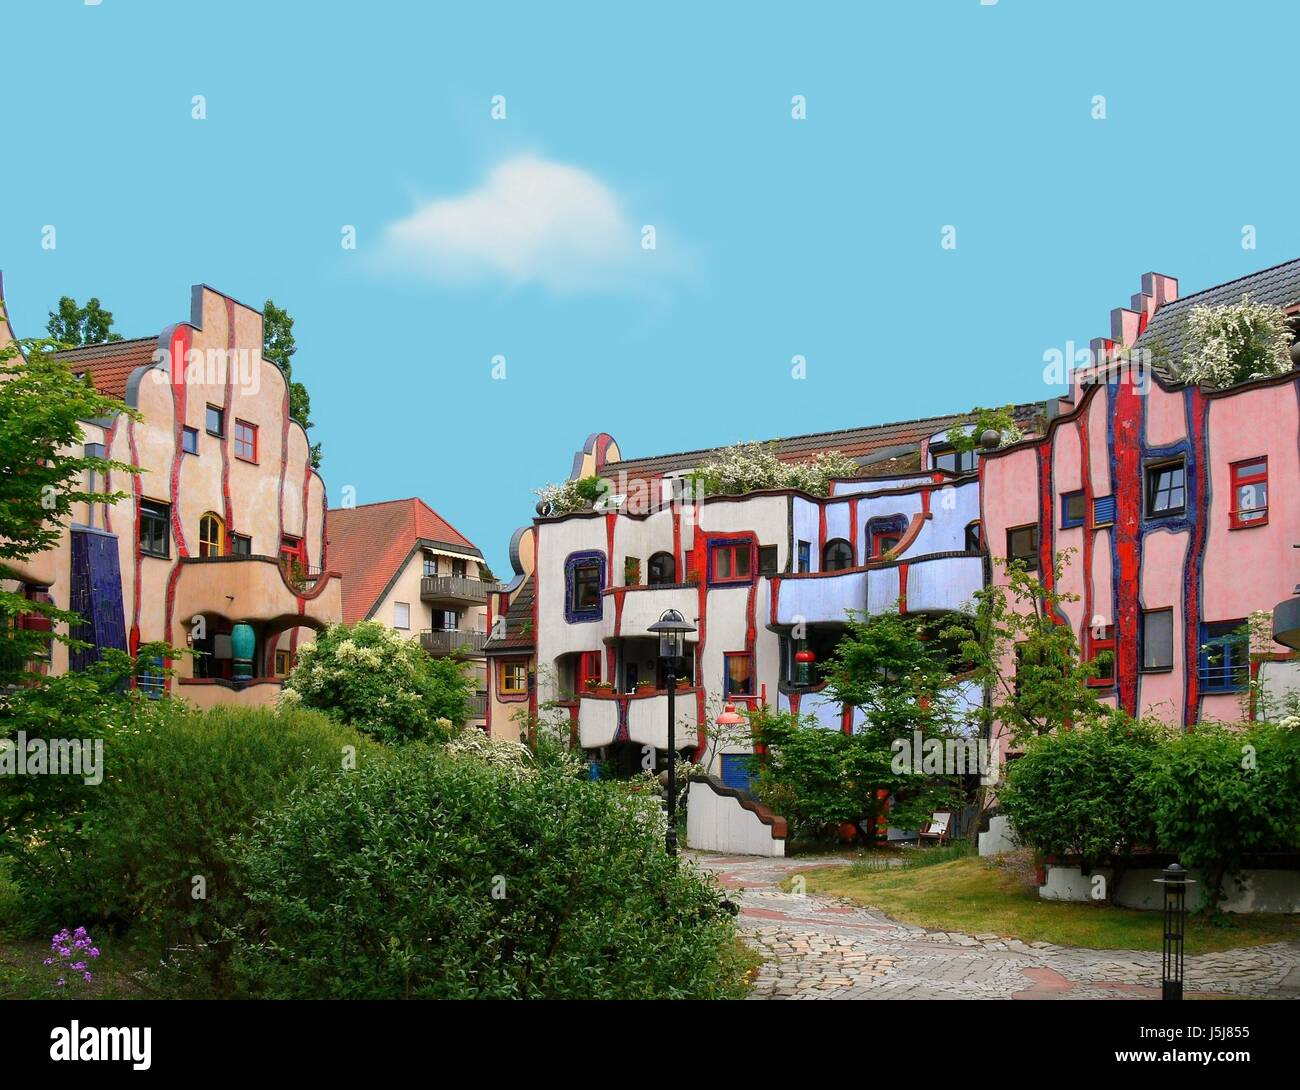 hundertwasserhaus plochingen stockfotos hundertwasserhaus plochingen bilder alamy. Black Bedroom Furniture Sets. Home Design Ideas